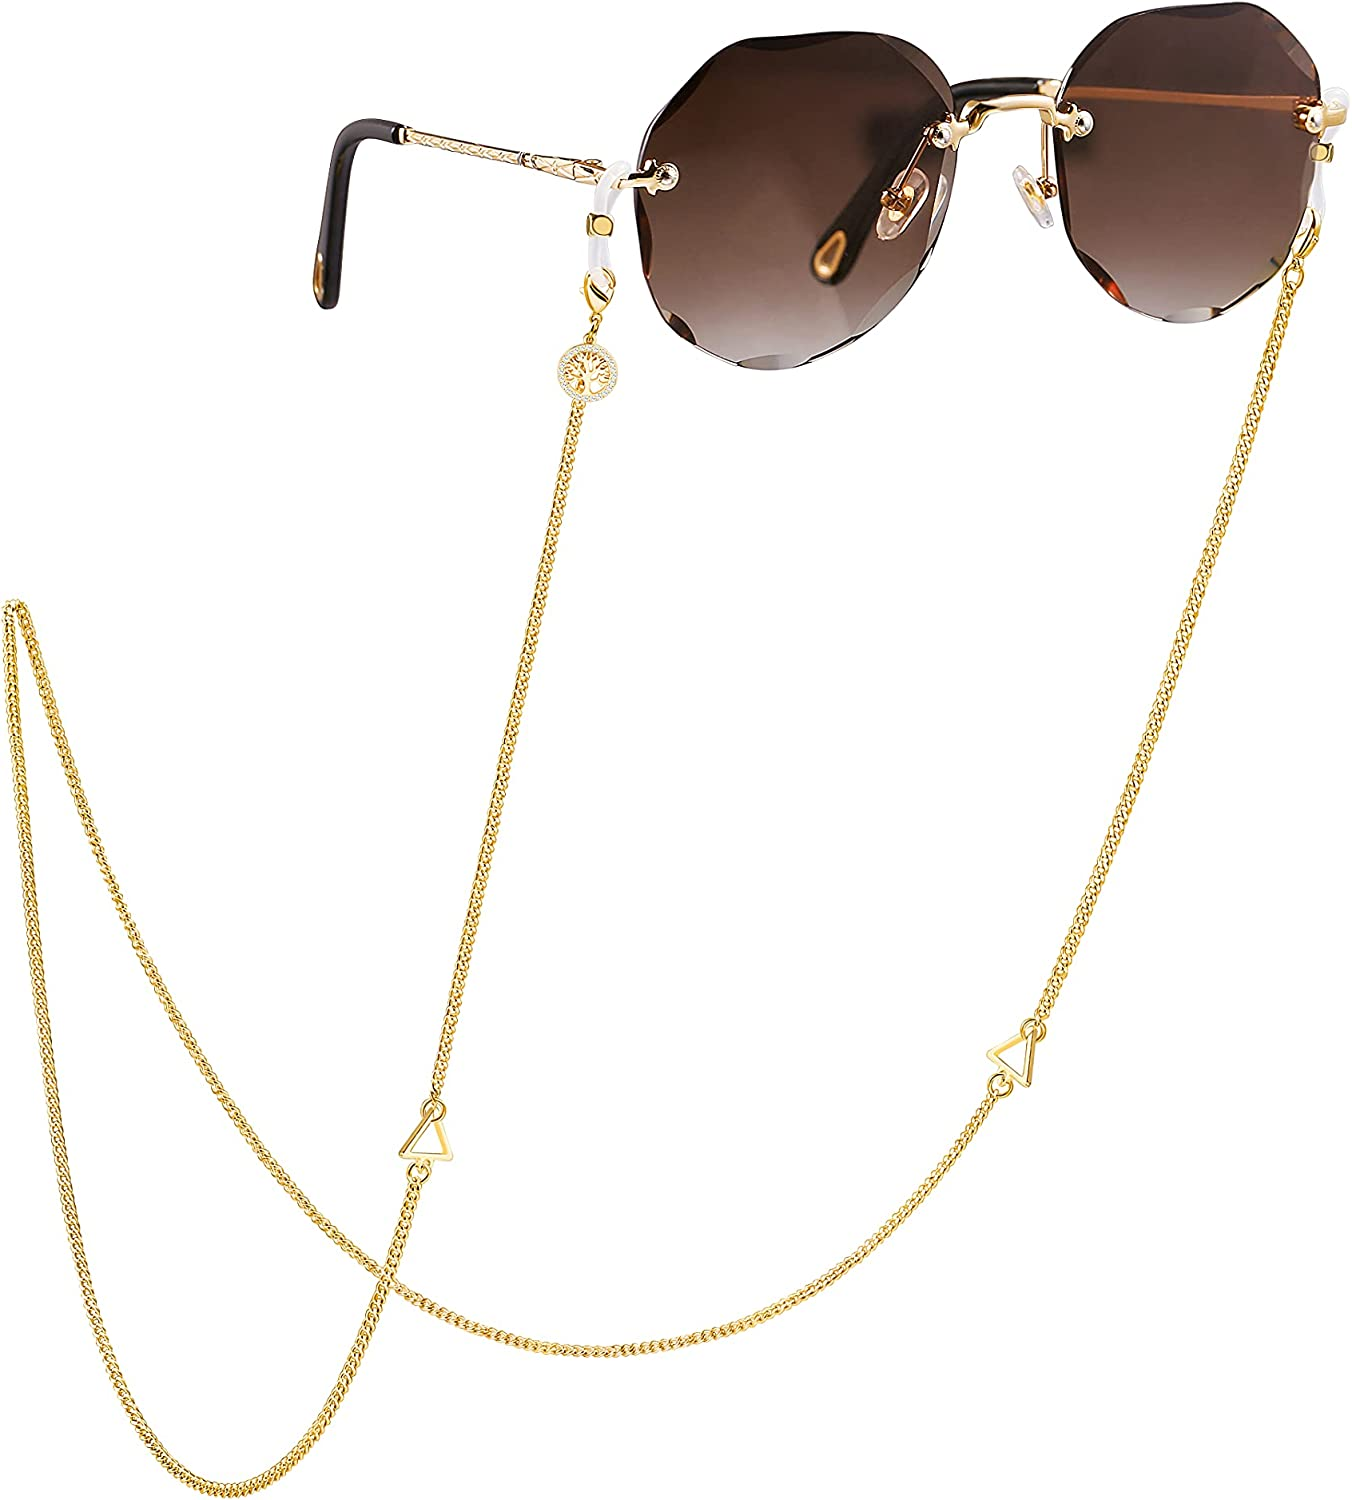 18K Gold Plated Glasses Chain Finally resale Some reservation start Pearl Tiger Turquoise Eye S Beaded